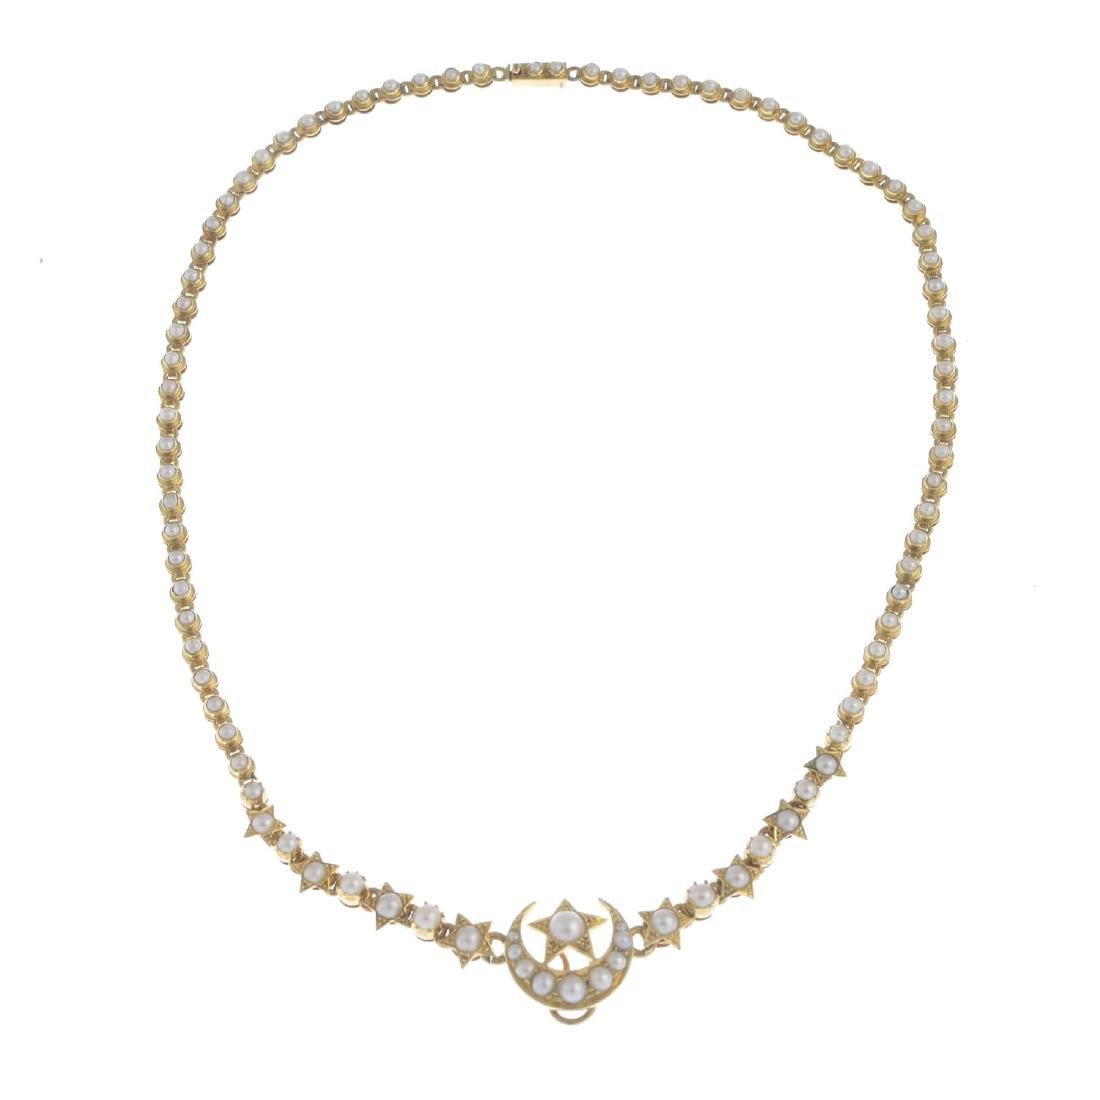 An early 20th century 18ct gold split pearl necklace. - 2